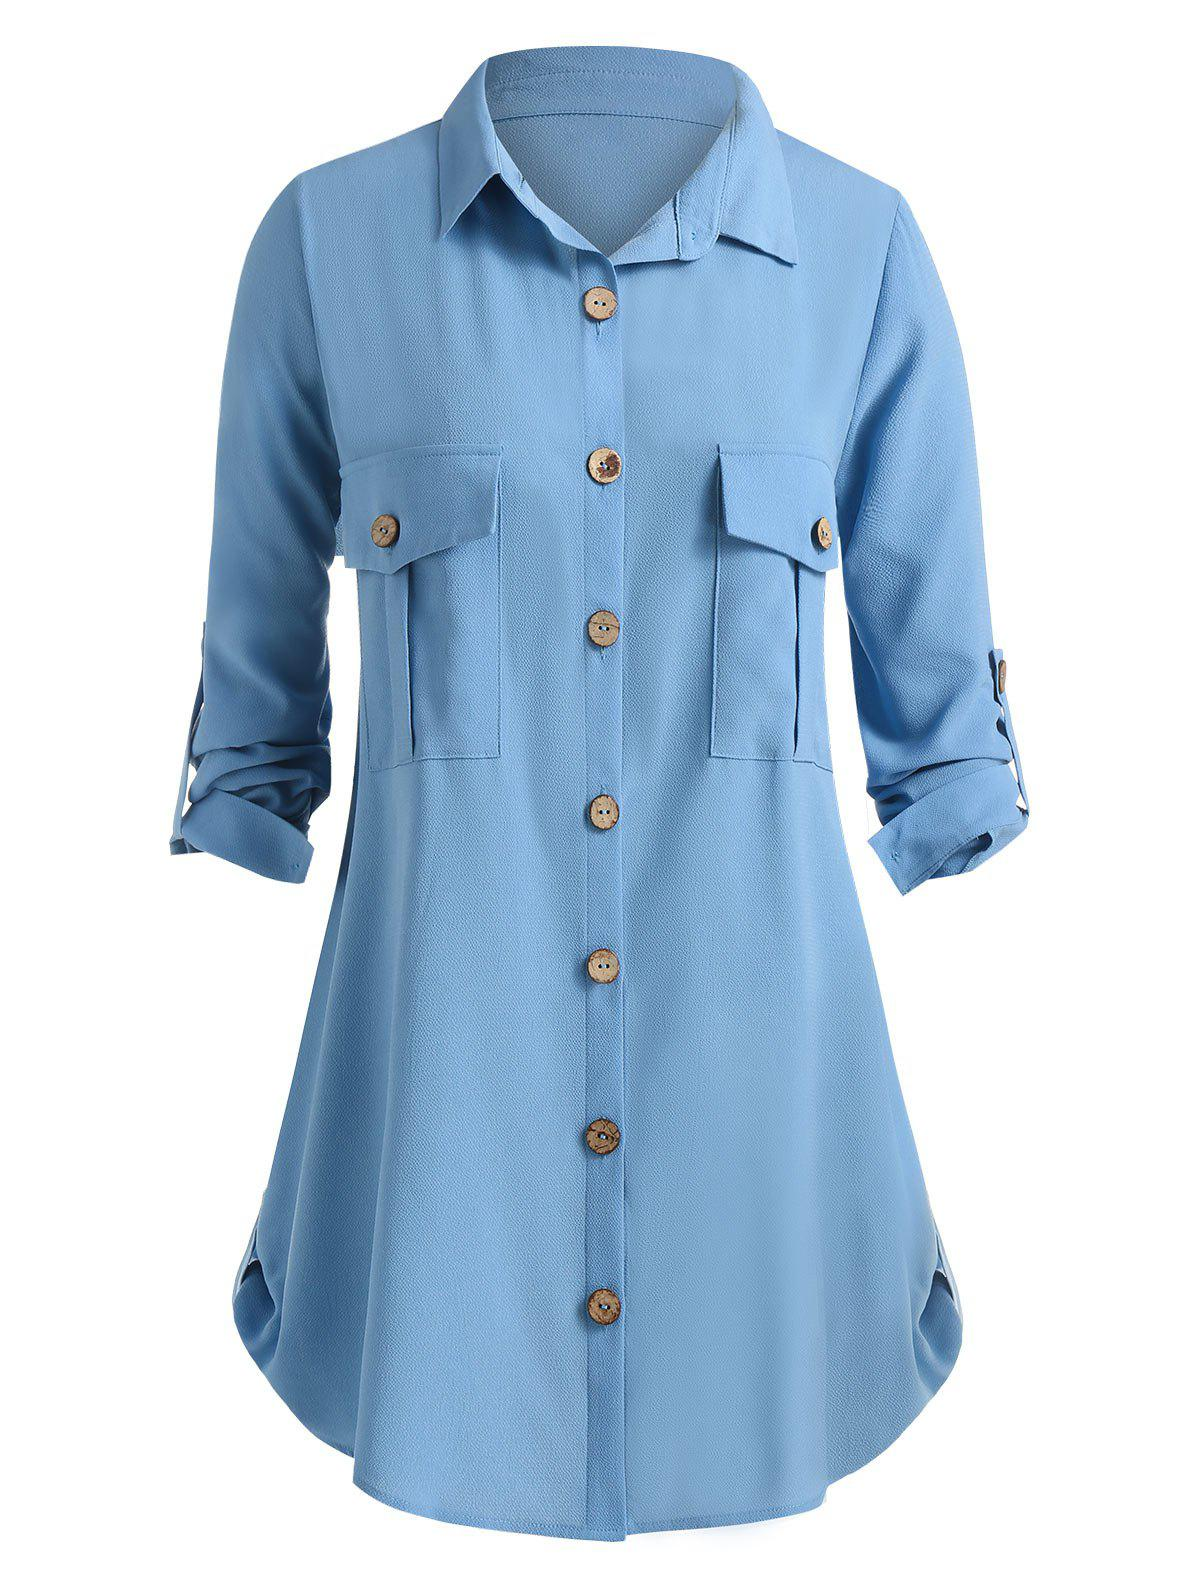 Plus Size Pockets Solid Tab Sleeve Blouse - BLUE KOI 5X